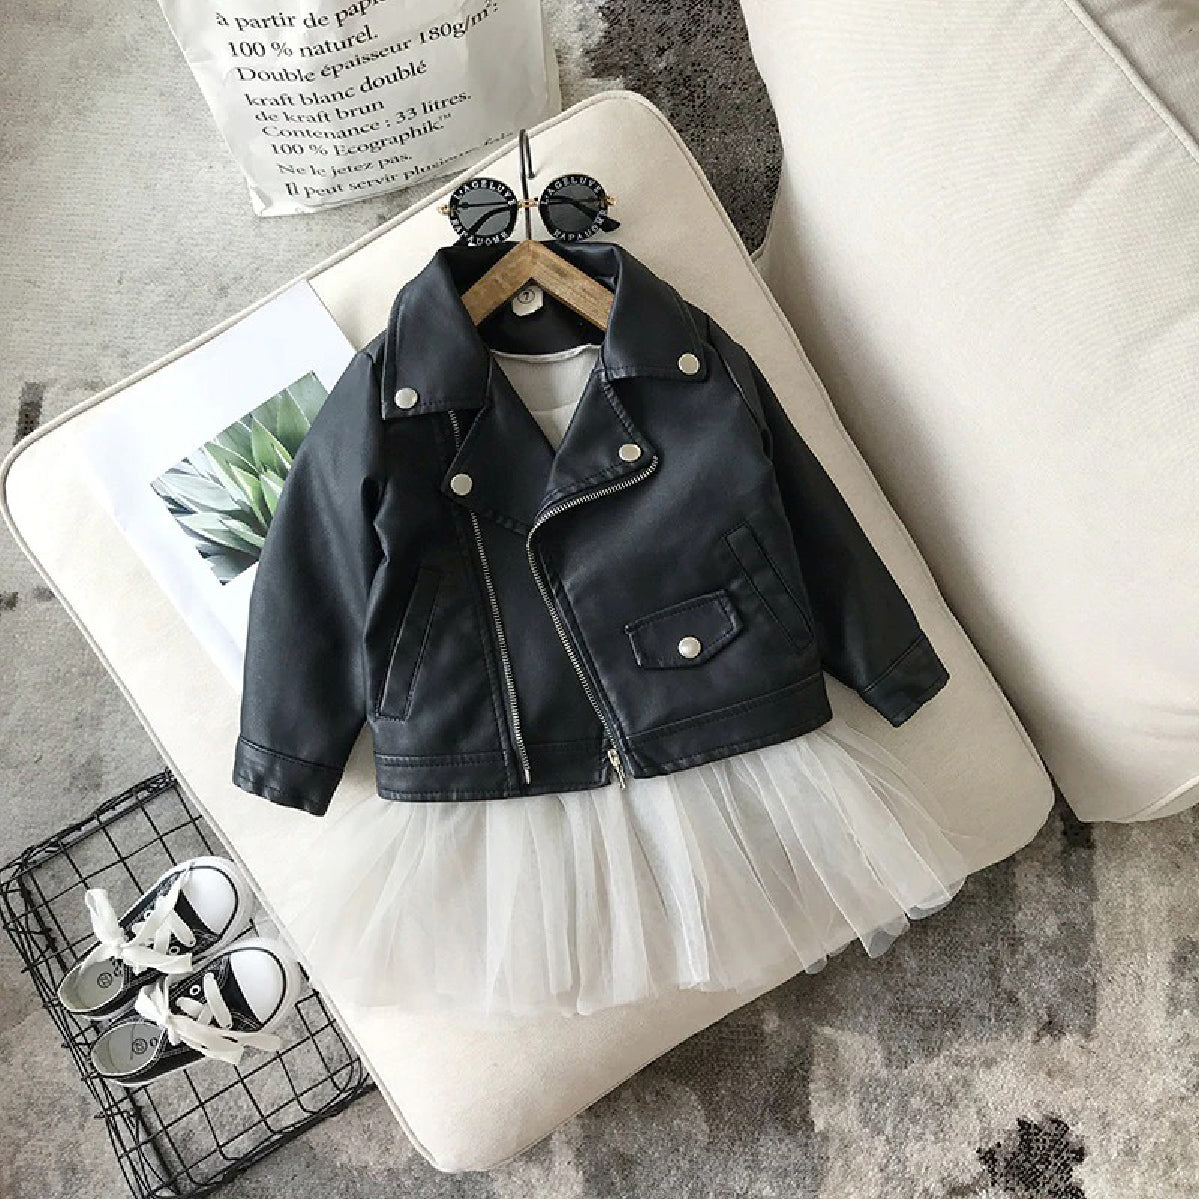 Baby Zone Black Leather Jacket ™